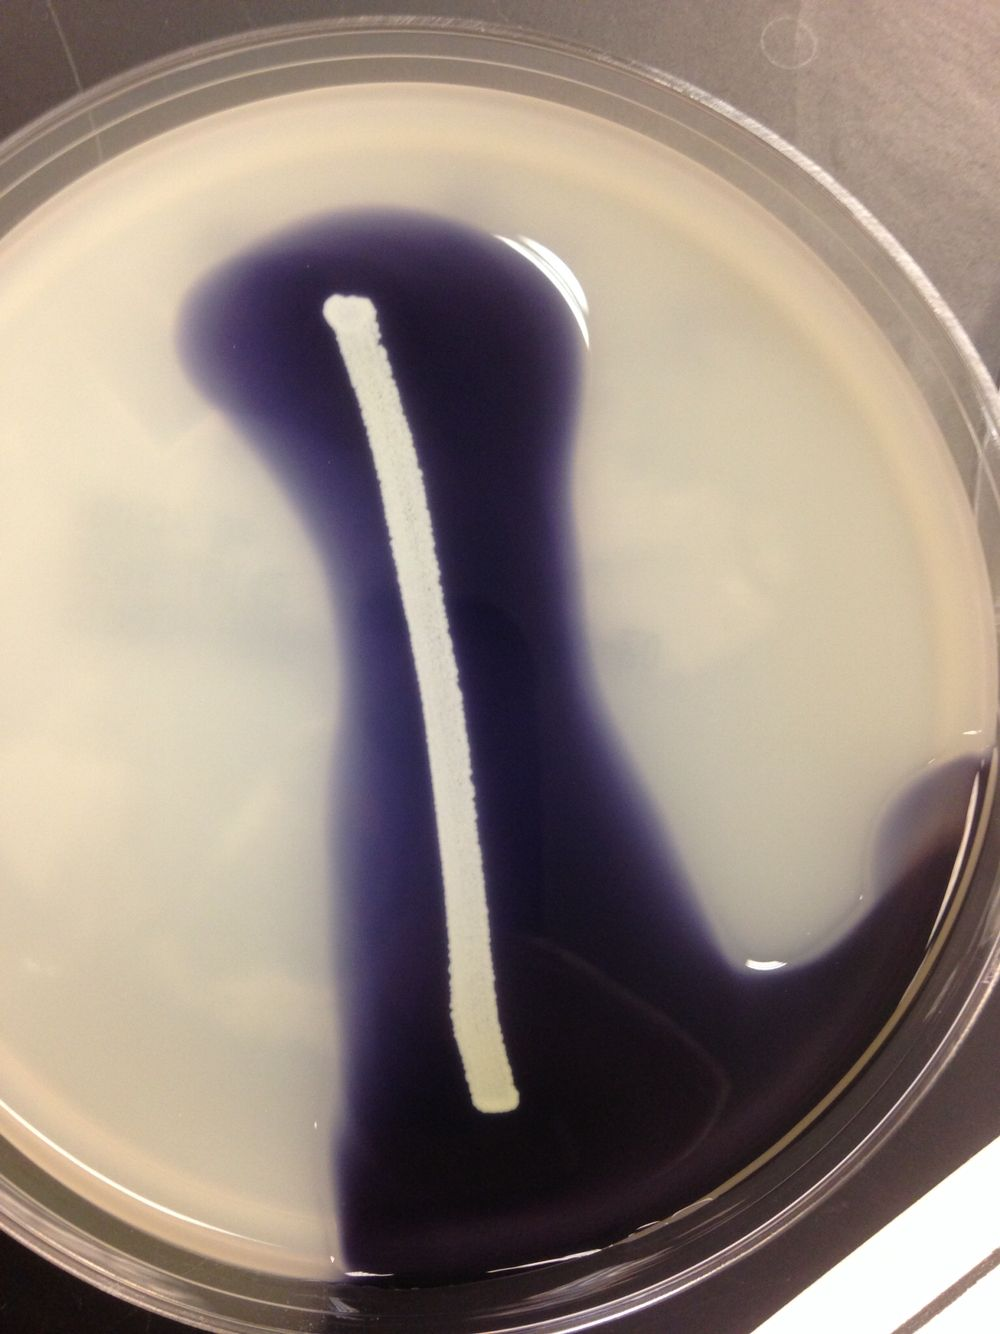 Negative starch hydrolysis test. Iodine is the reagent